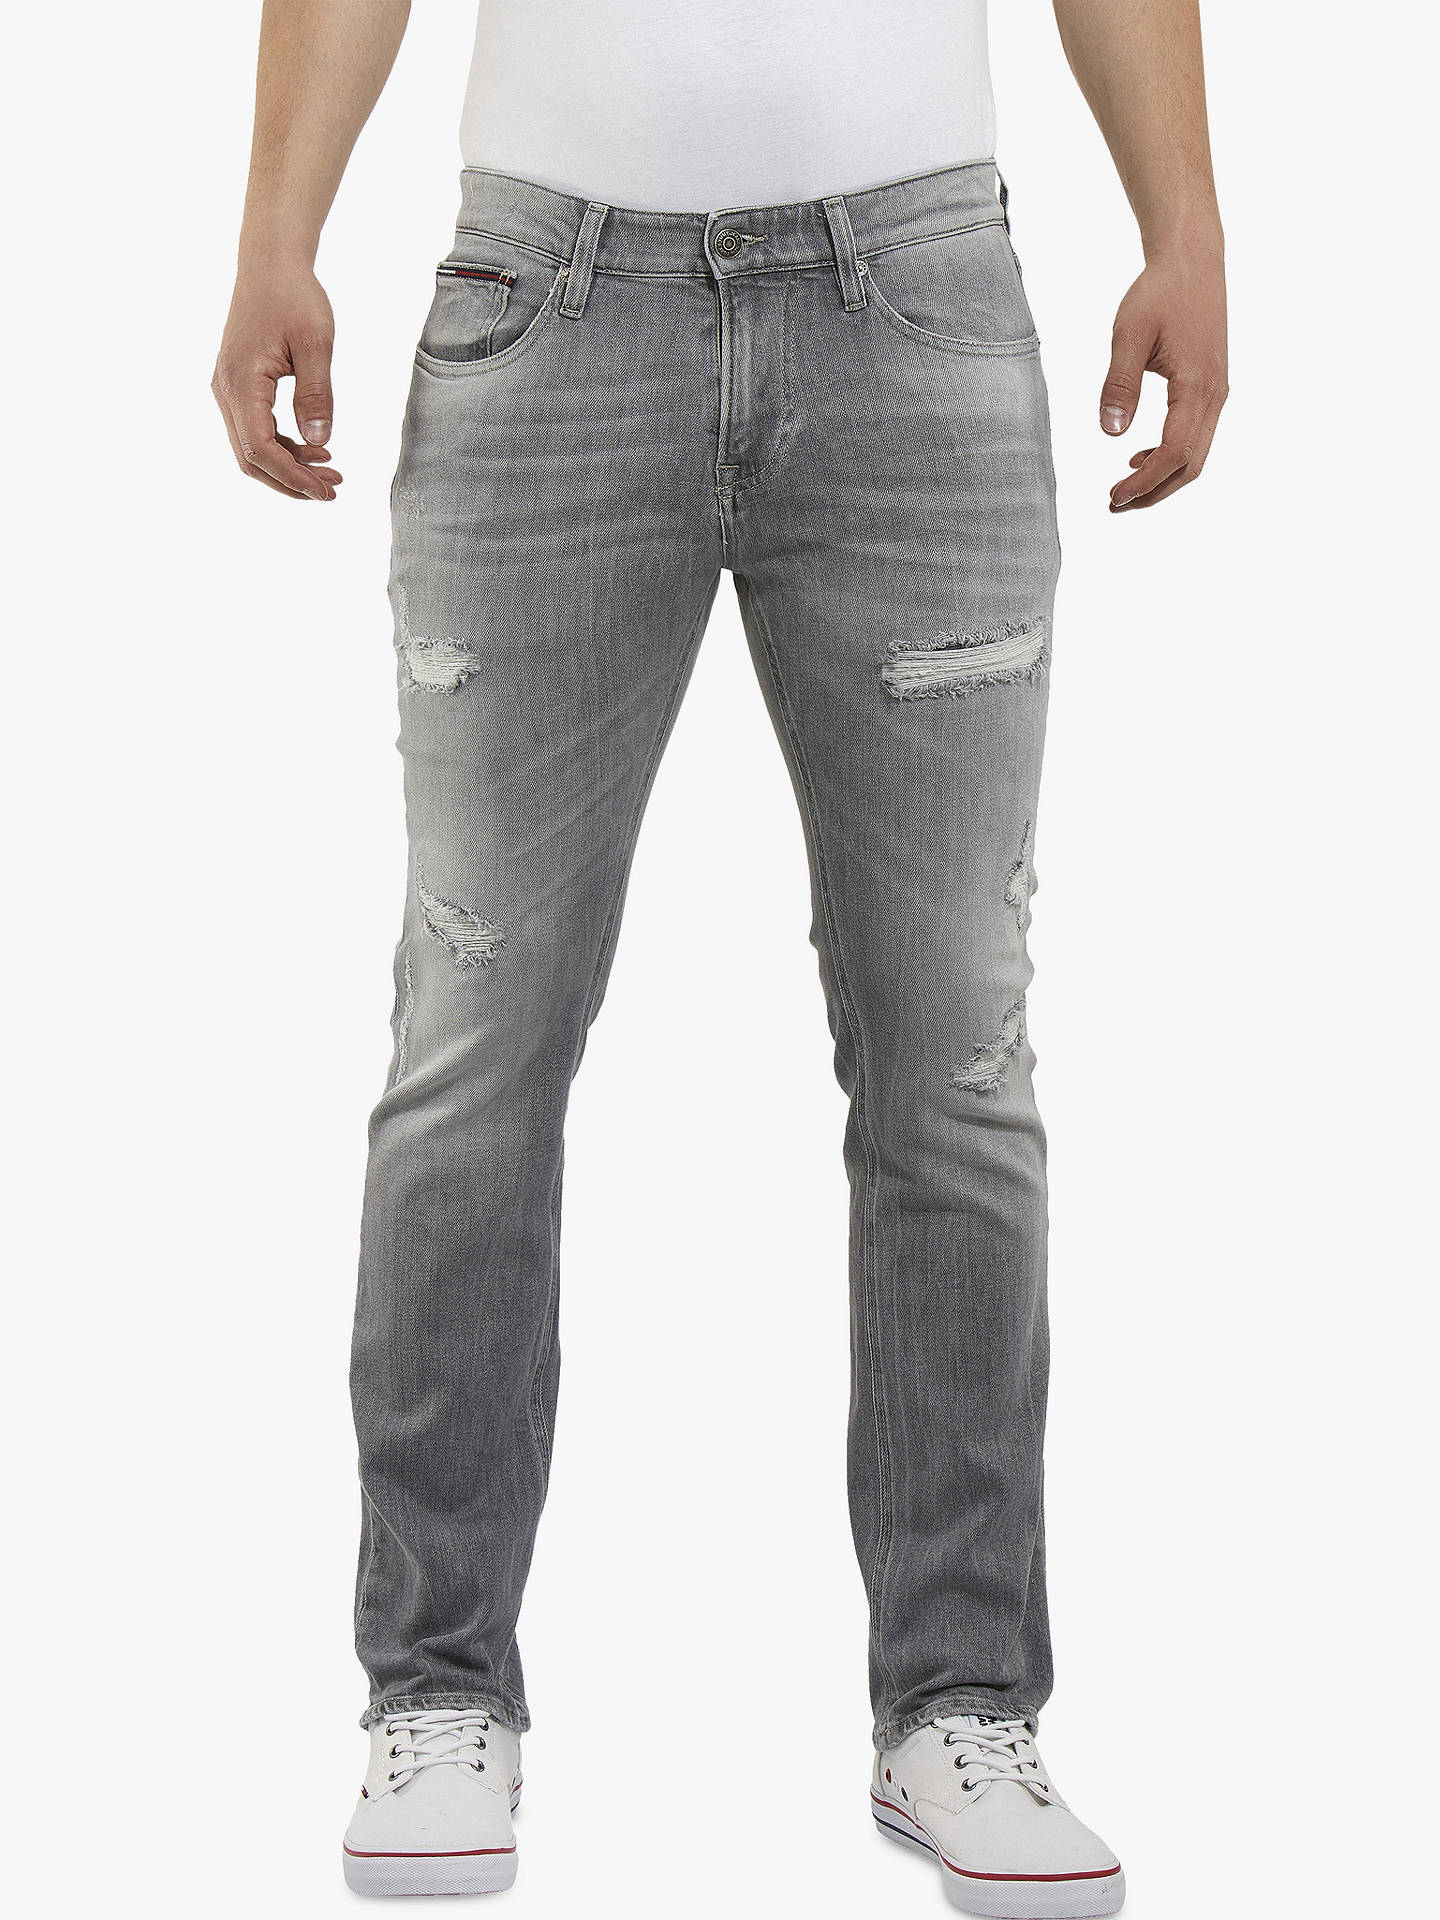 19e7539c Buy Tommy Jeans Slim Scanton Jeans, Ever Grey Distressed, 30R Online at  johnlewis.